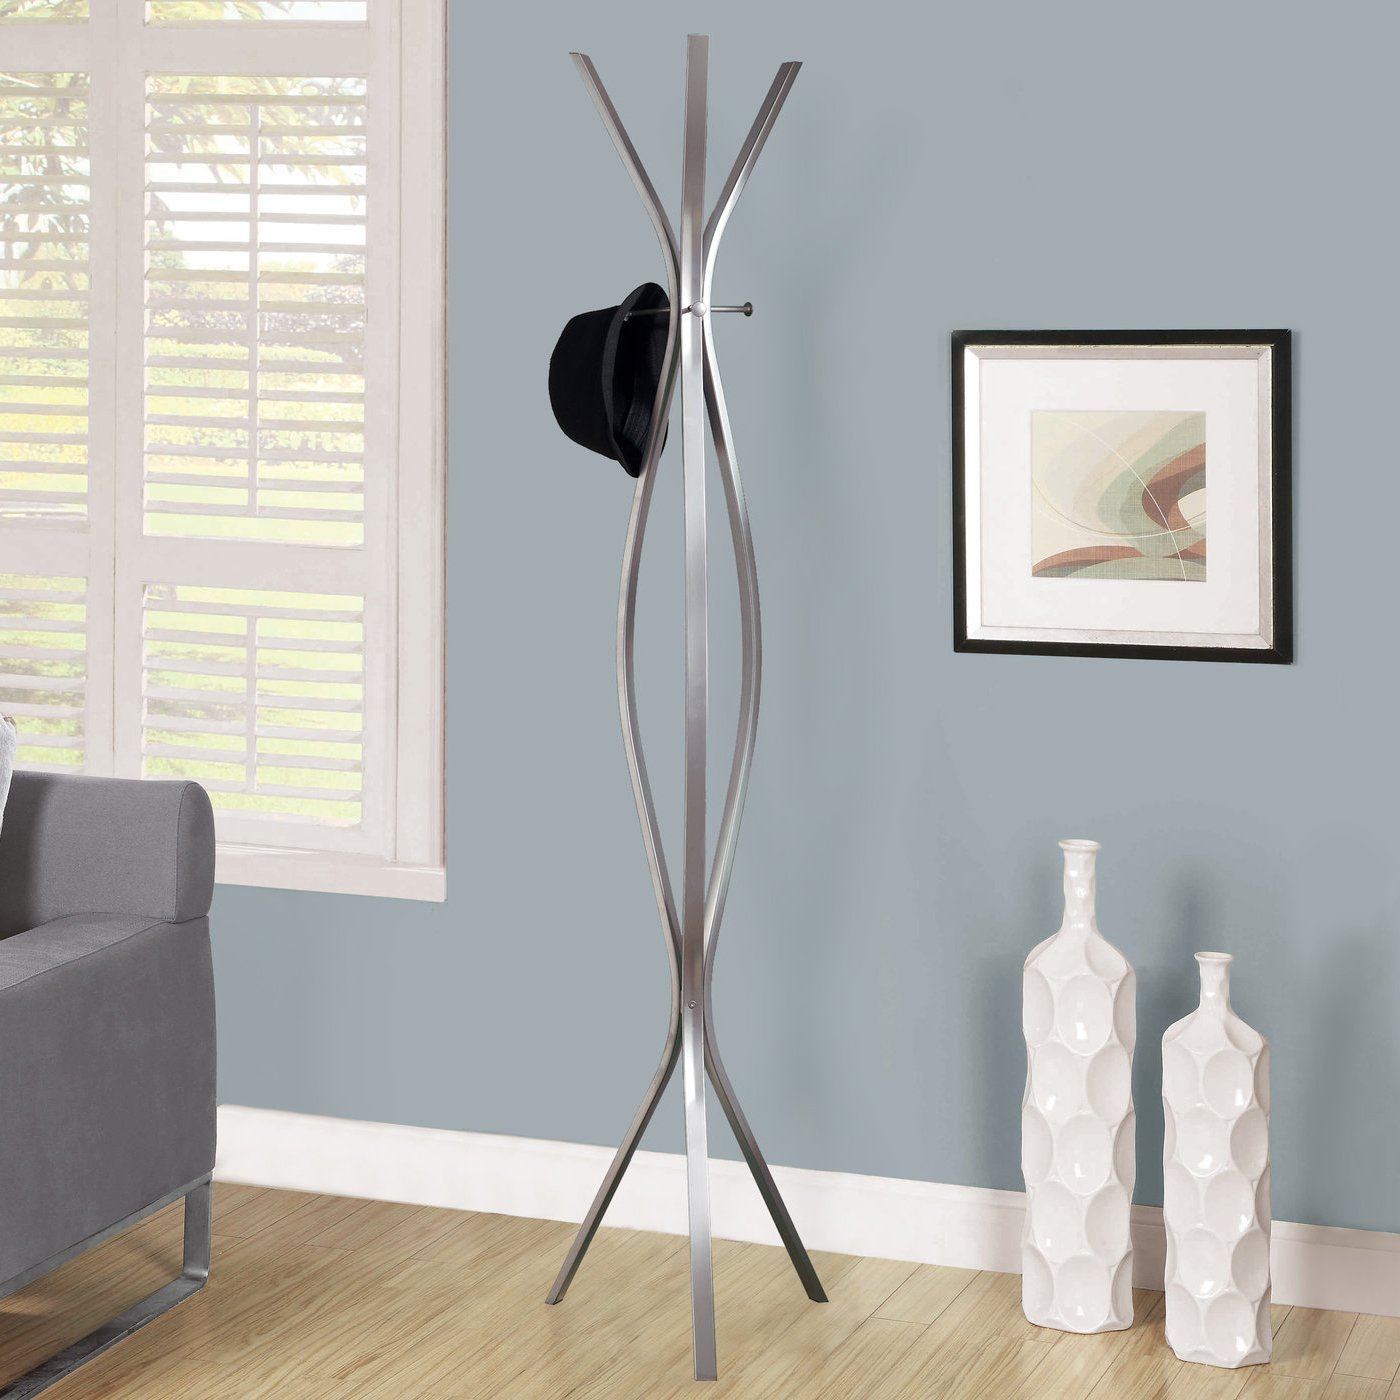 Amazoncom Monarch Specialties I 2015, Coat Rack, Contemporary Style, Cappuccino